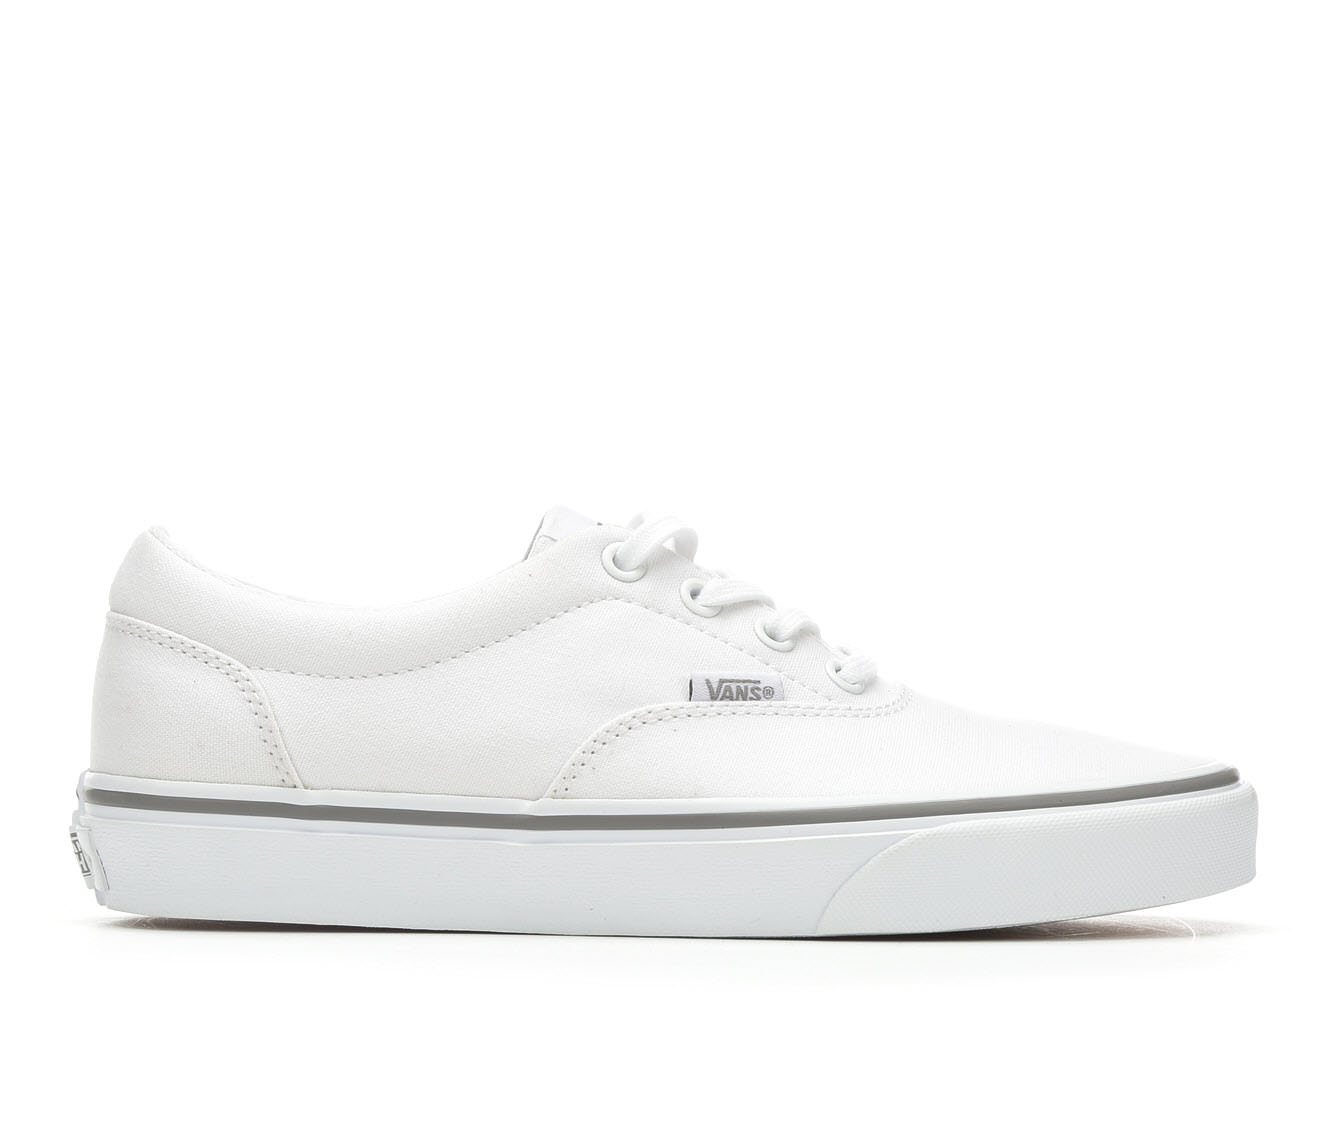 Vans Doheny Women's Athletic Shoe (White)